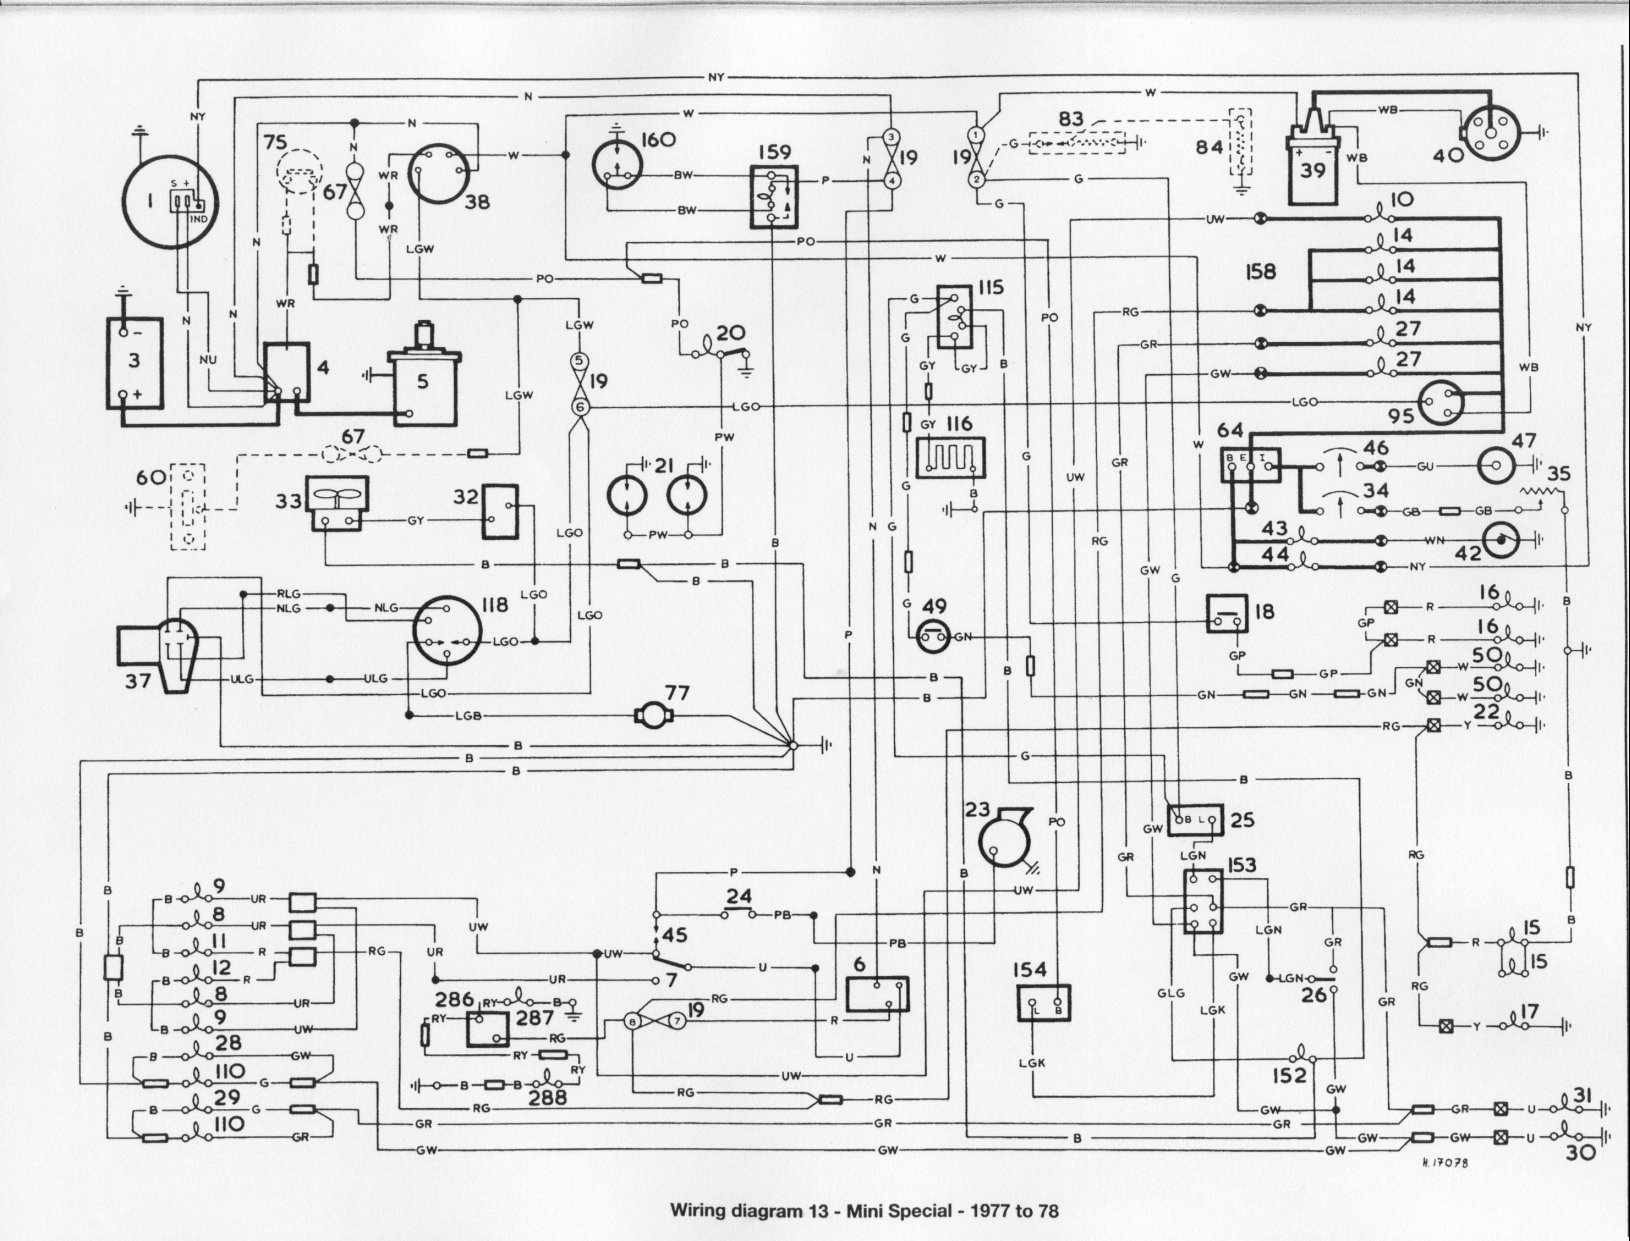 1990 mini cooper wiring diagram wiring diagram